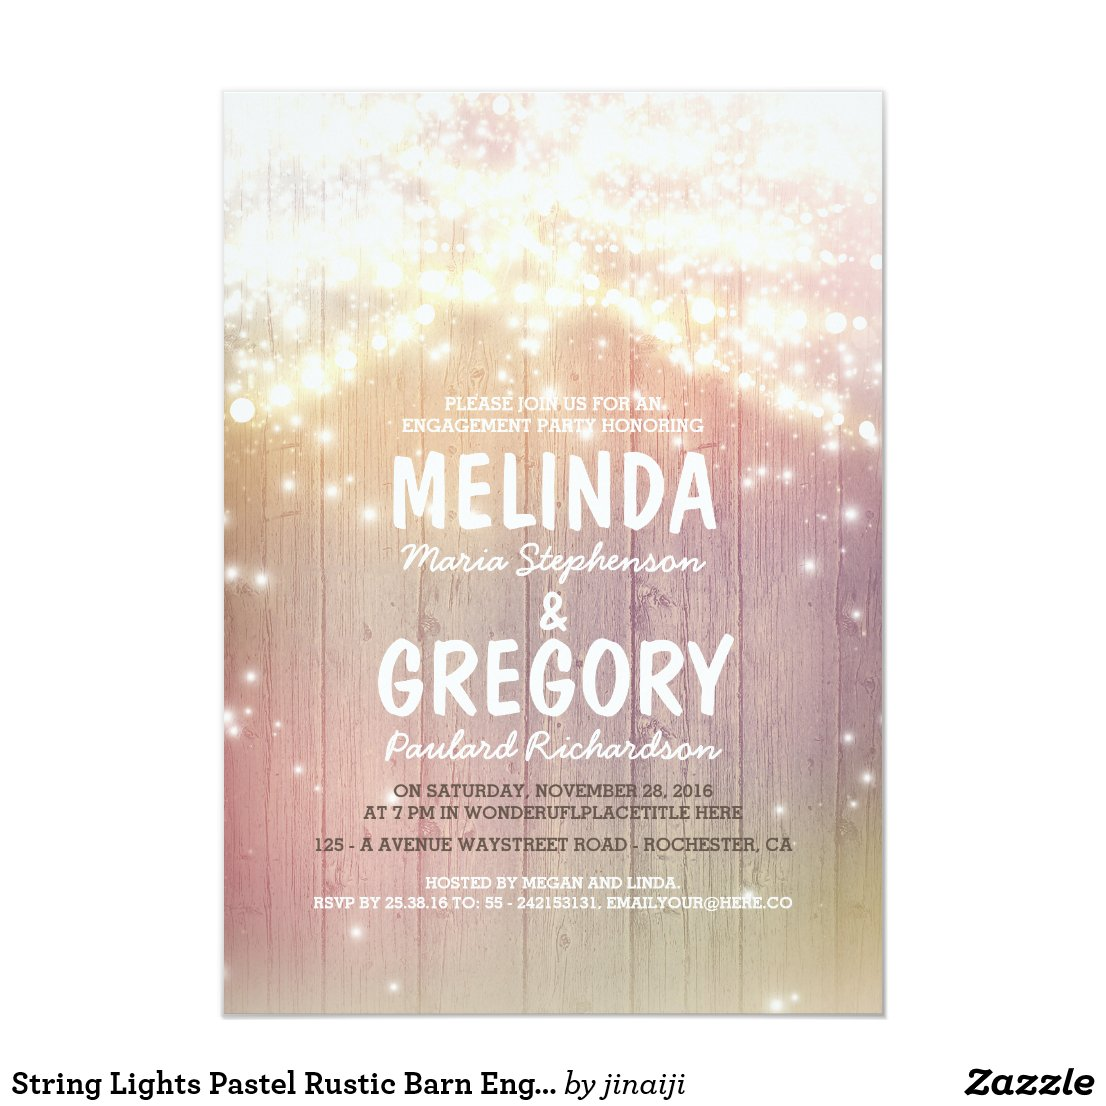 String Lights Pastel Rustic Barn Engagement Party Invitation